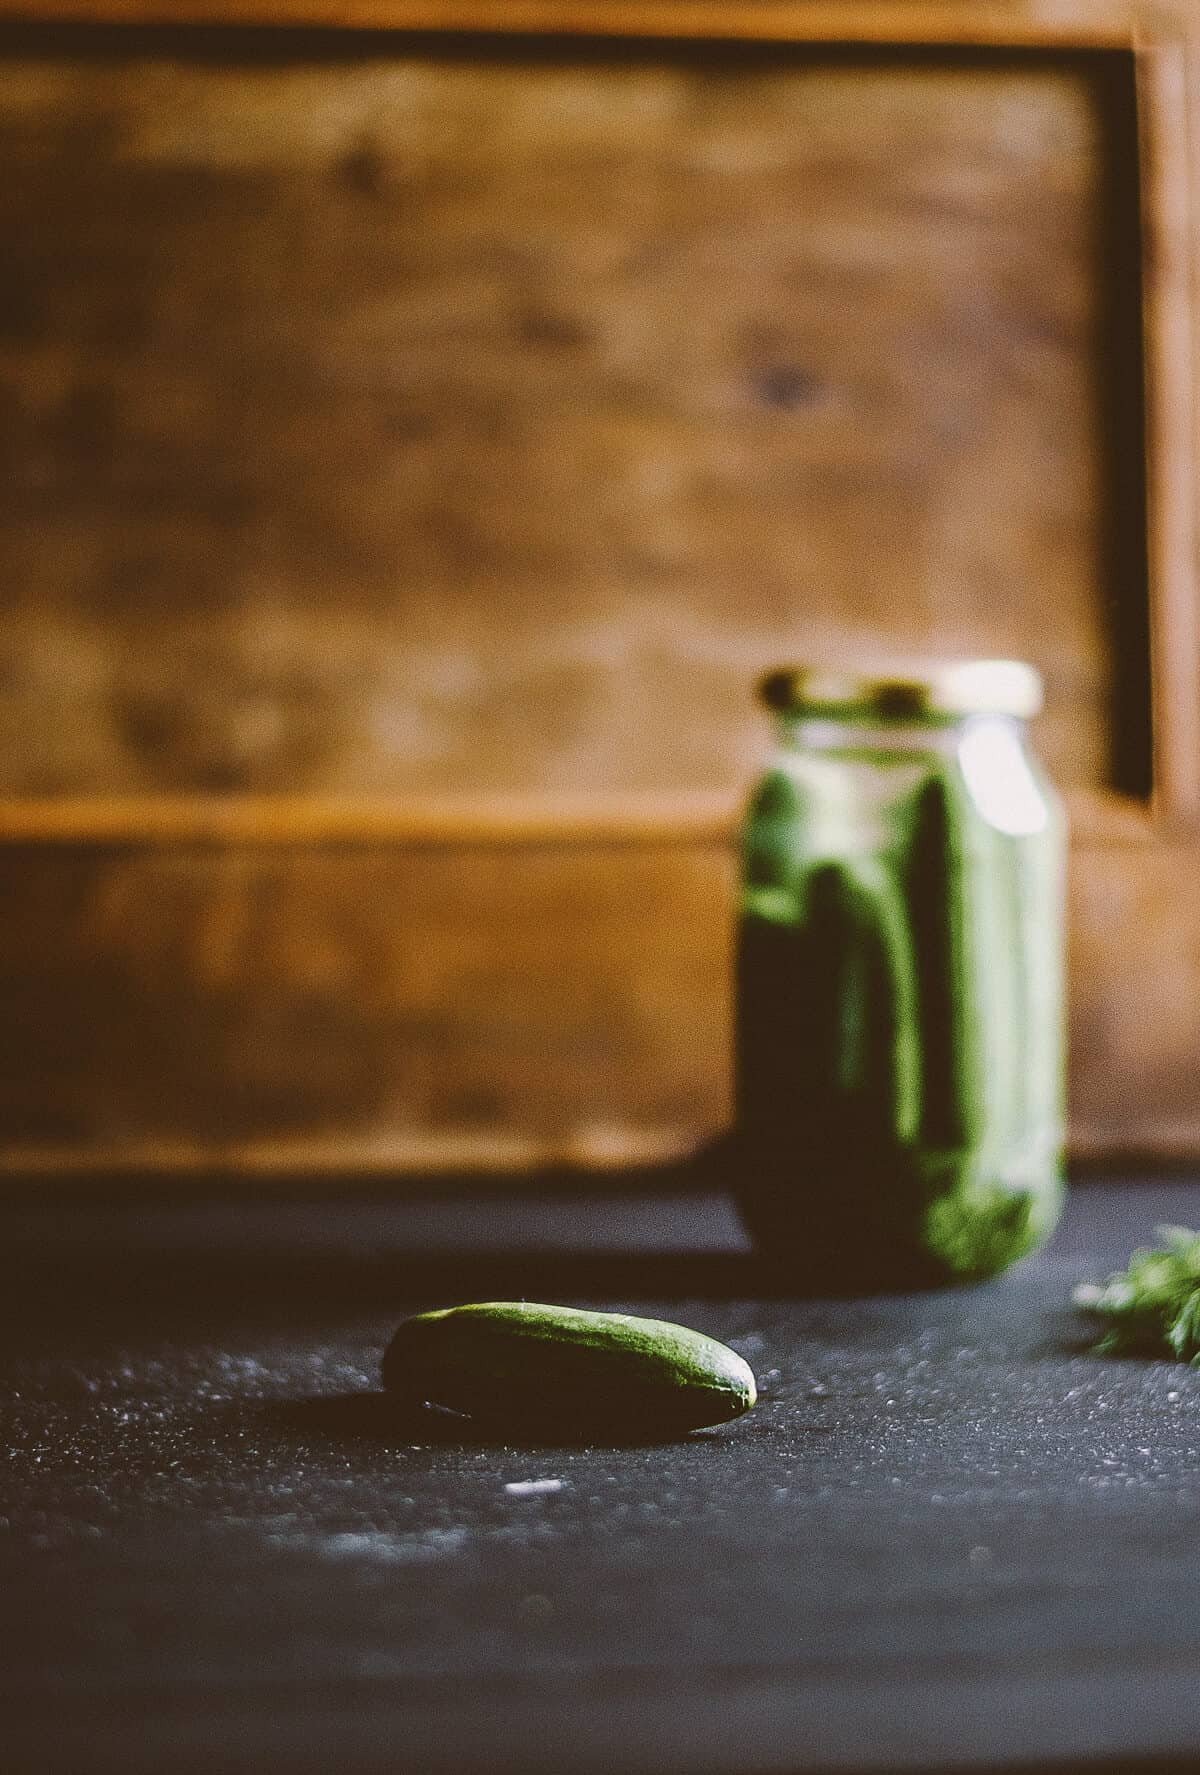 a glass jar full of pickles on a dark table with a wooden background